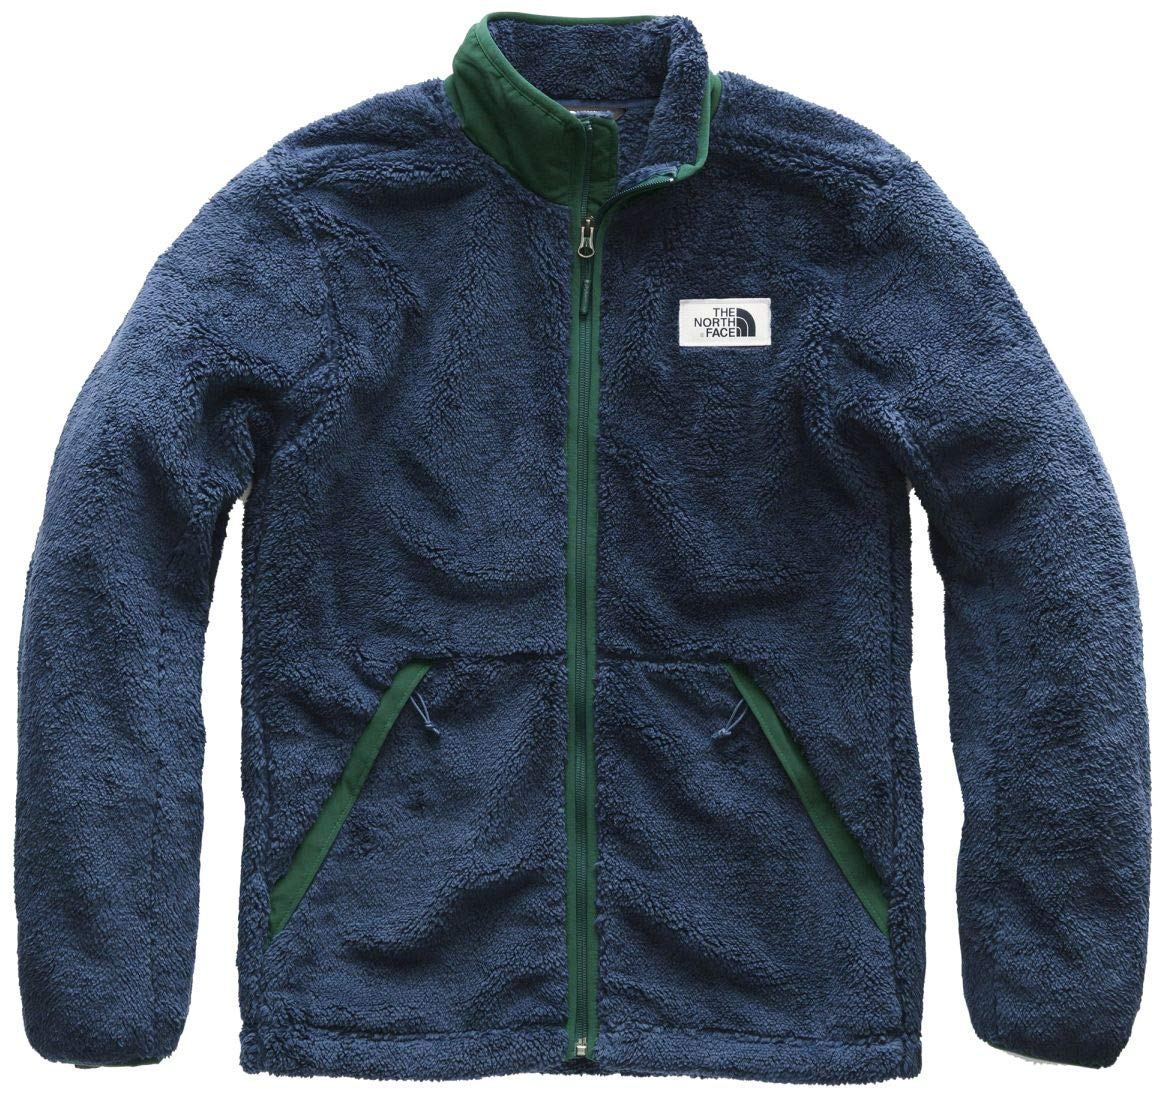 32ff6dc6e The North Face Campshire Full Zip Jacket - Men's